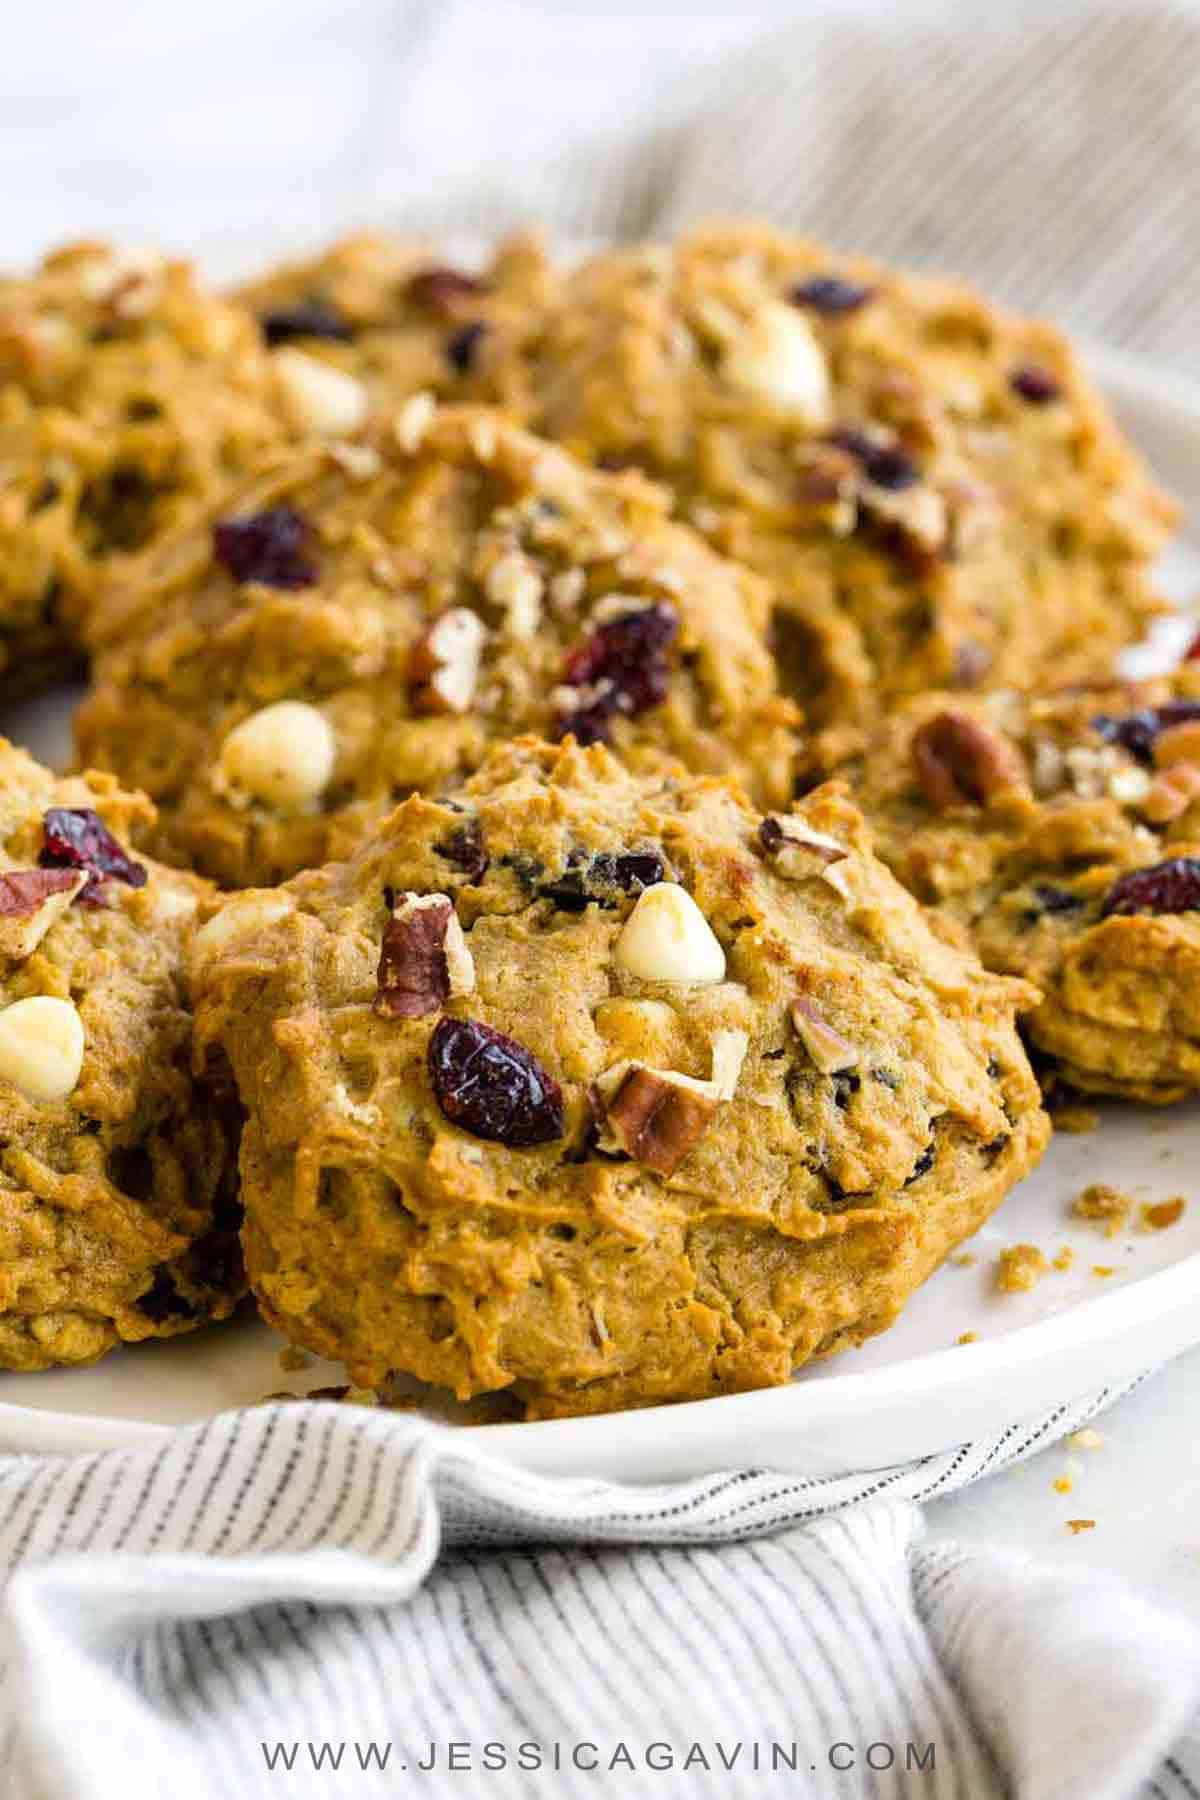 A sweet and spiced persimmon cookies recipe with cranberries, white chocolate chips, and pecans. A perfect soft and moist treat to make during the holidays! #persimmoncookie #cookies #persimmon #fallrecipes